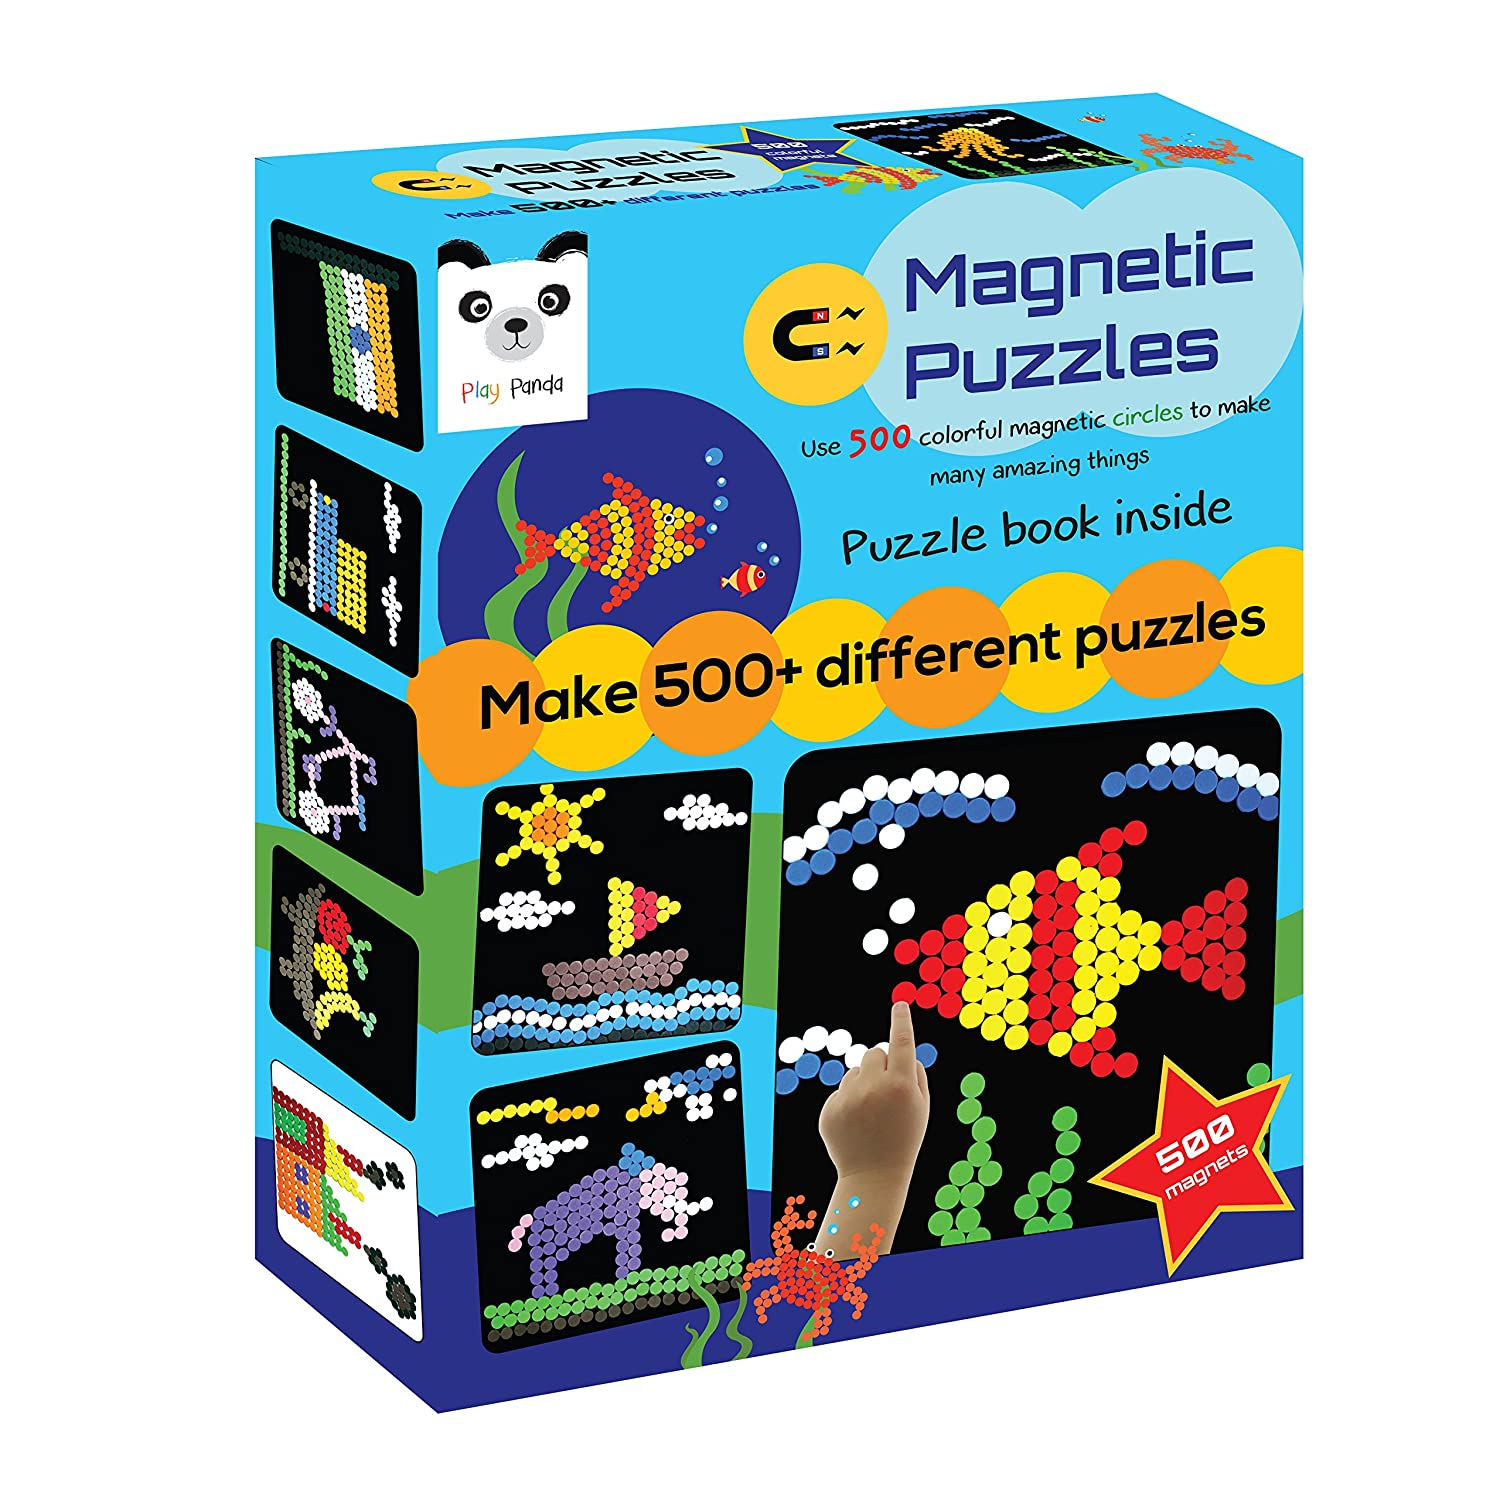 Co coloring games for 4 year olds online - Product Details